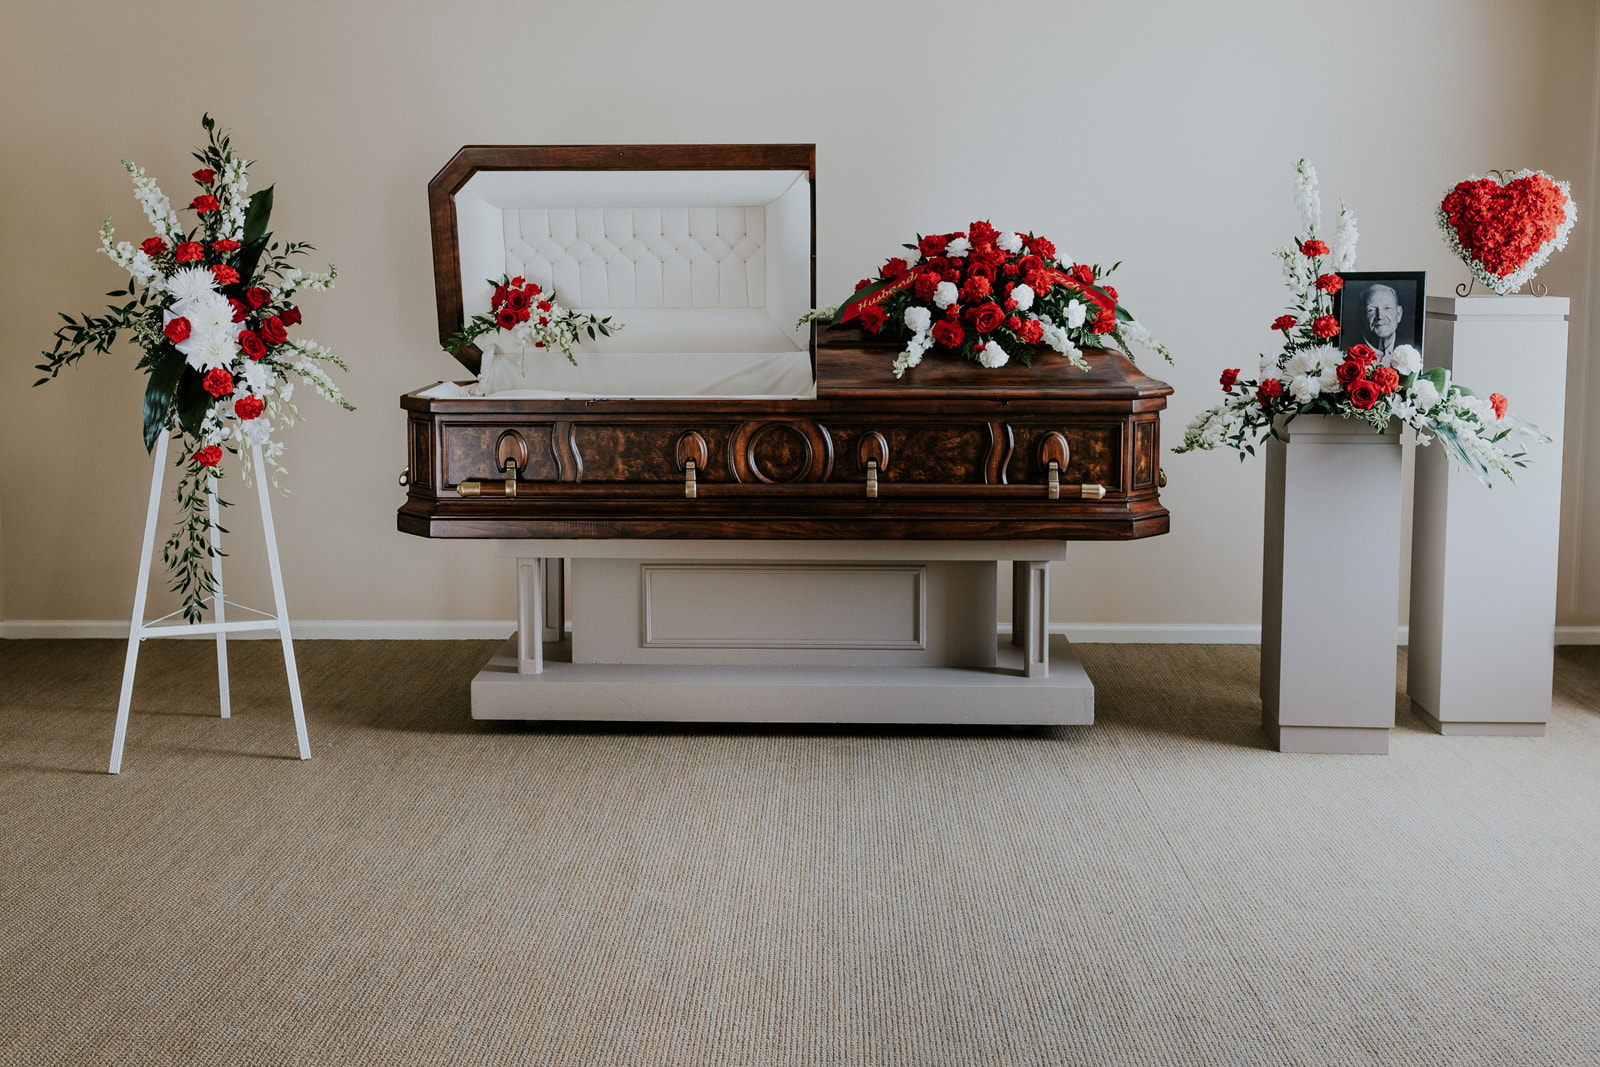 The Heritage Collection offers a traditional approach with its red and white selection of flowers and symmetrically designed casket spray. The complementing floral pieces include a lid piece, easel arrangement, portrait arrangement, 12-inch heart designed in wet floral foam, and memorial urn arrangement.  The flowers included within some or all of the collection pieces are red roses, white orchids, snapdragons, fugi, and carnations.